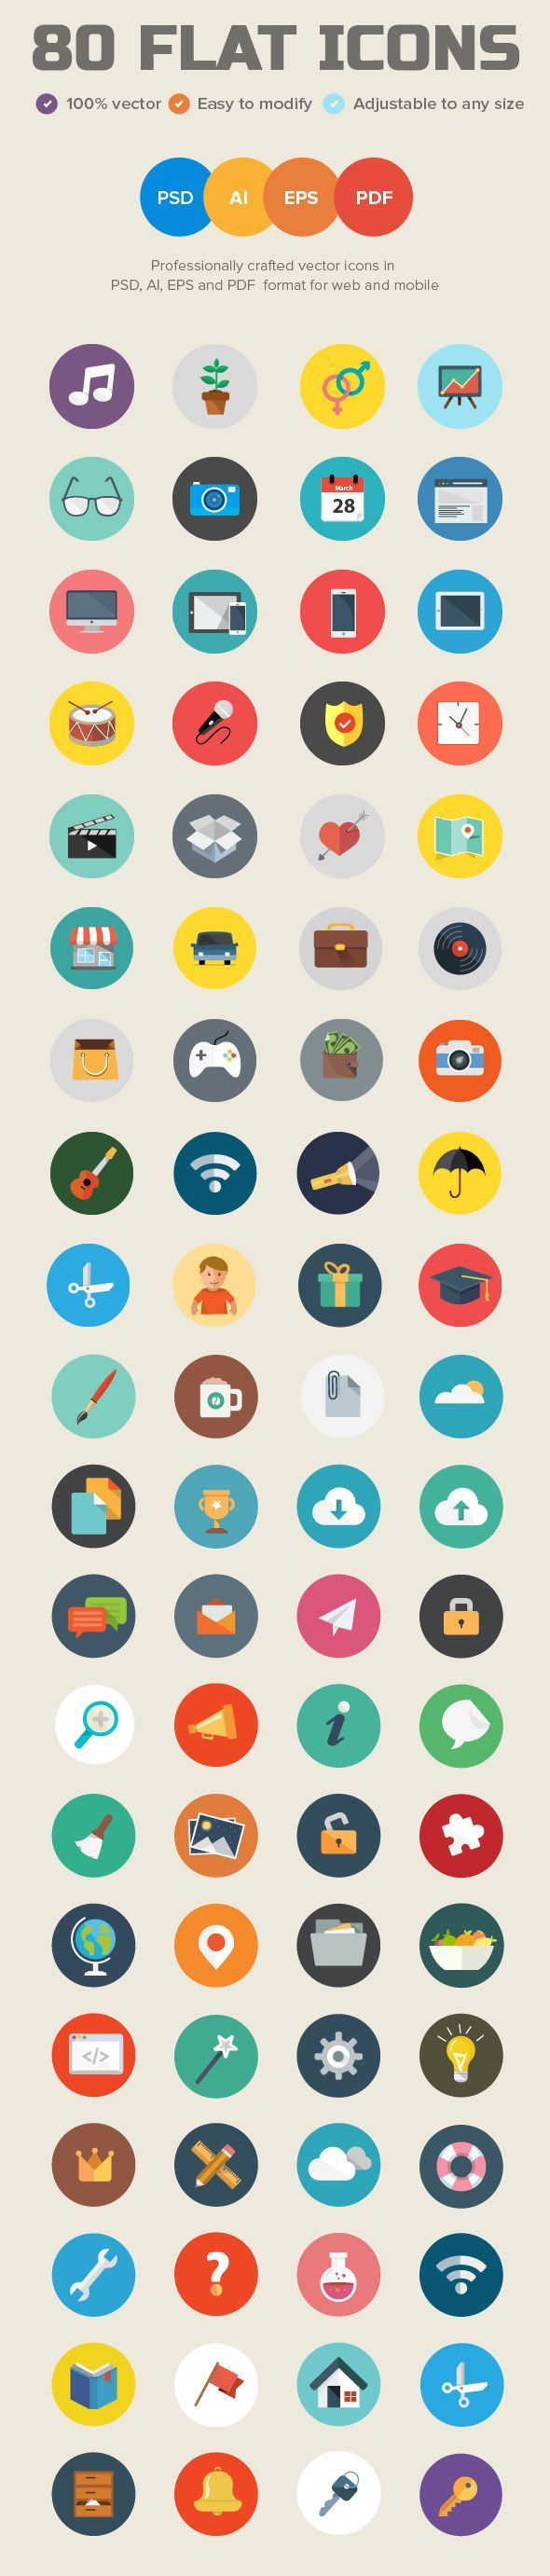 Professionally designed Vector icons in PSD, AI, EPS and PDF for web and mobile …